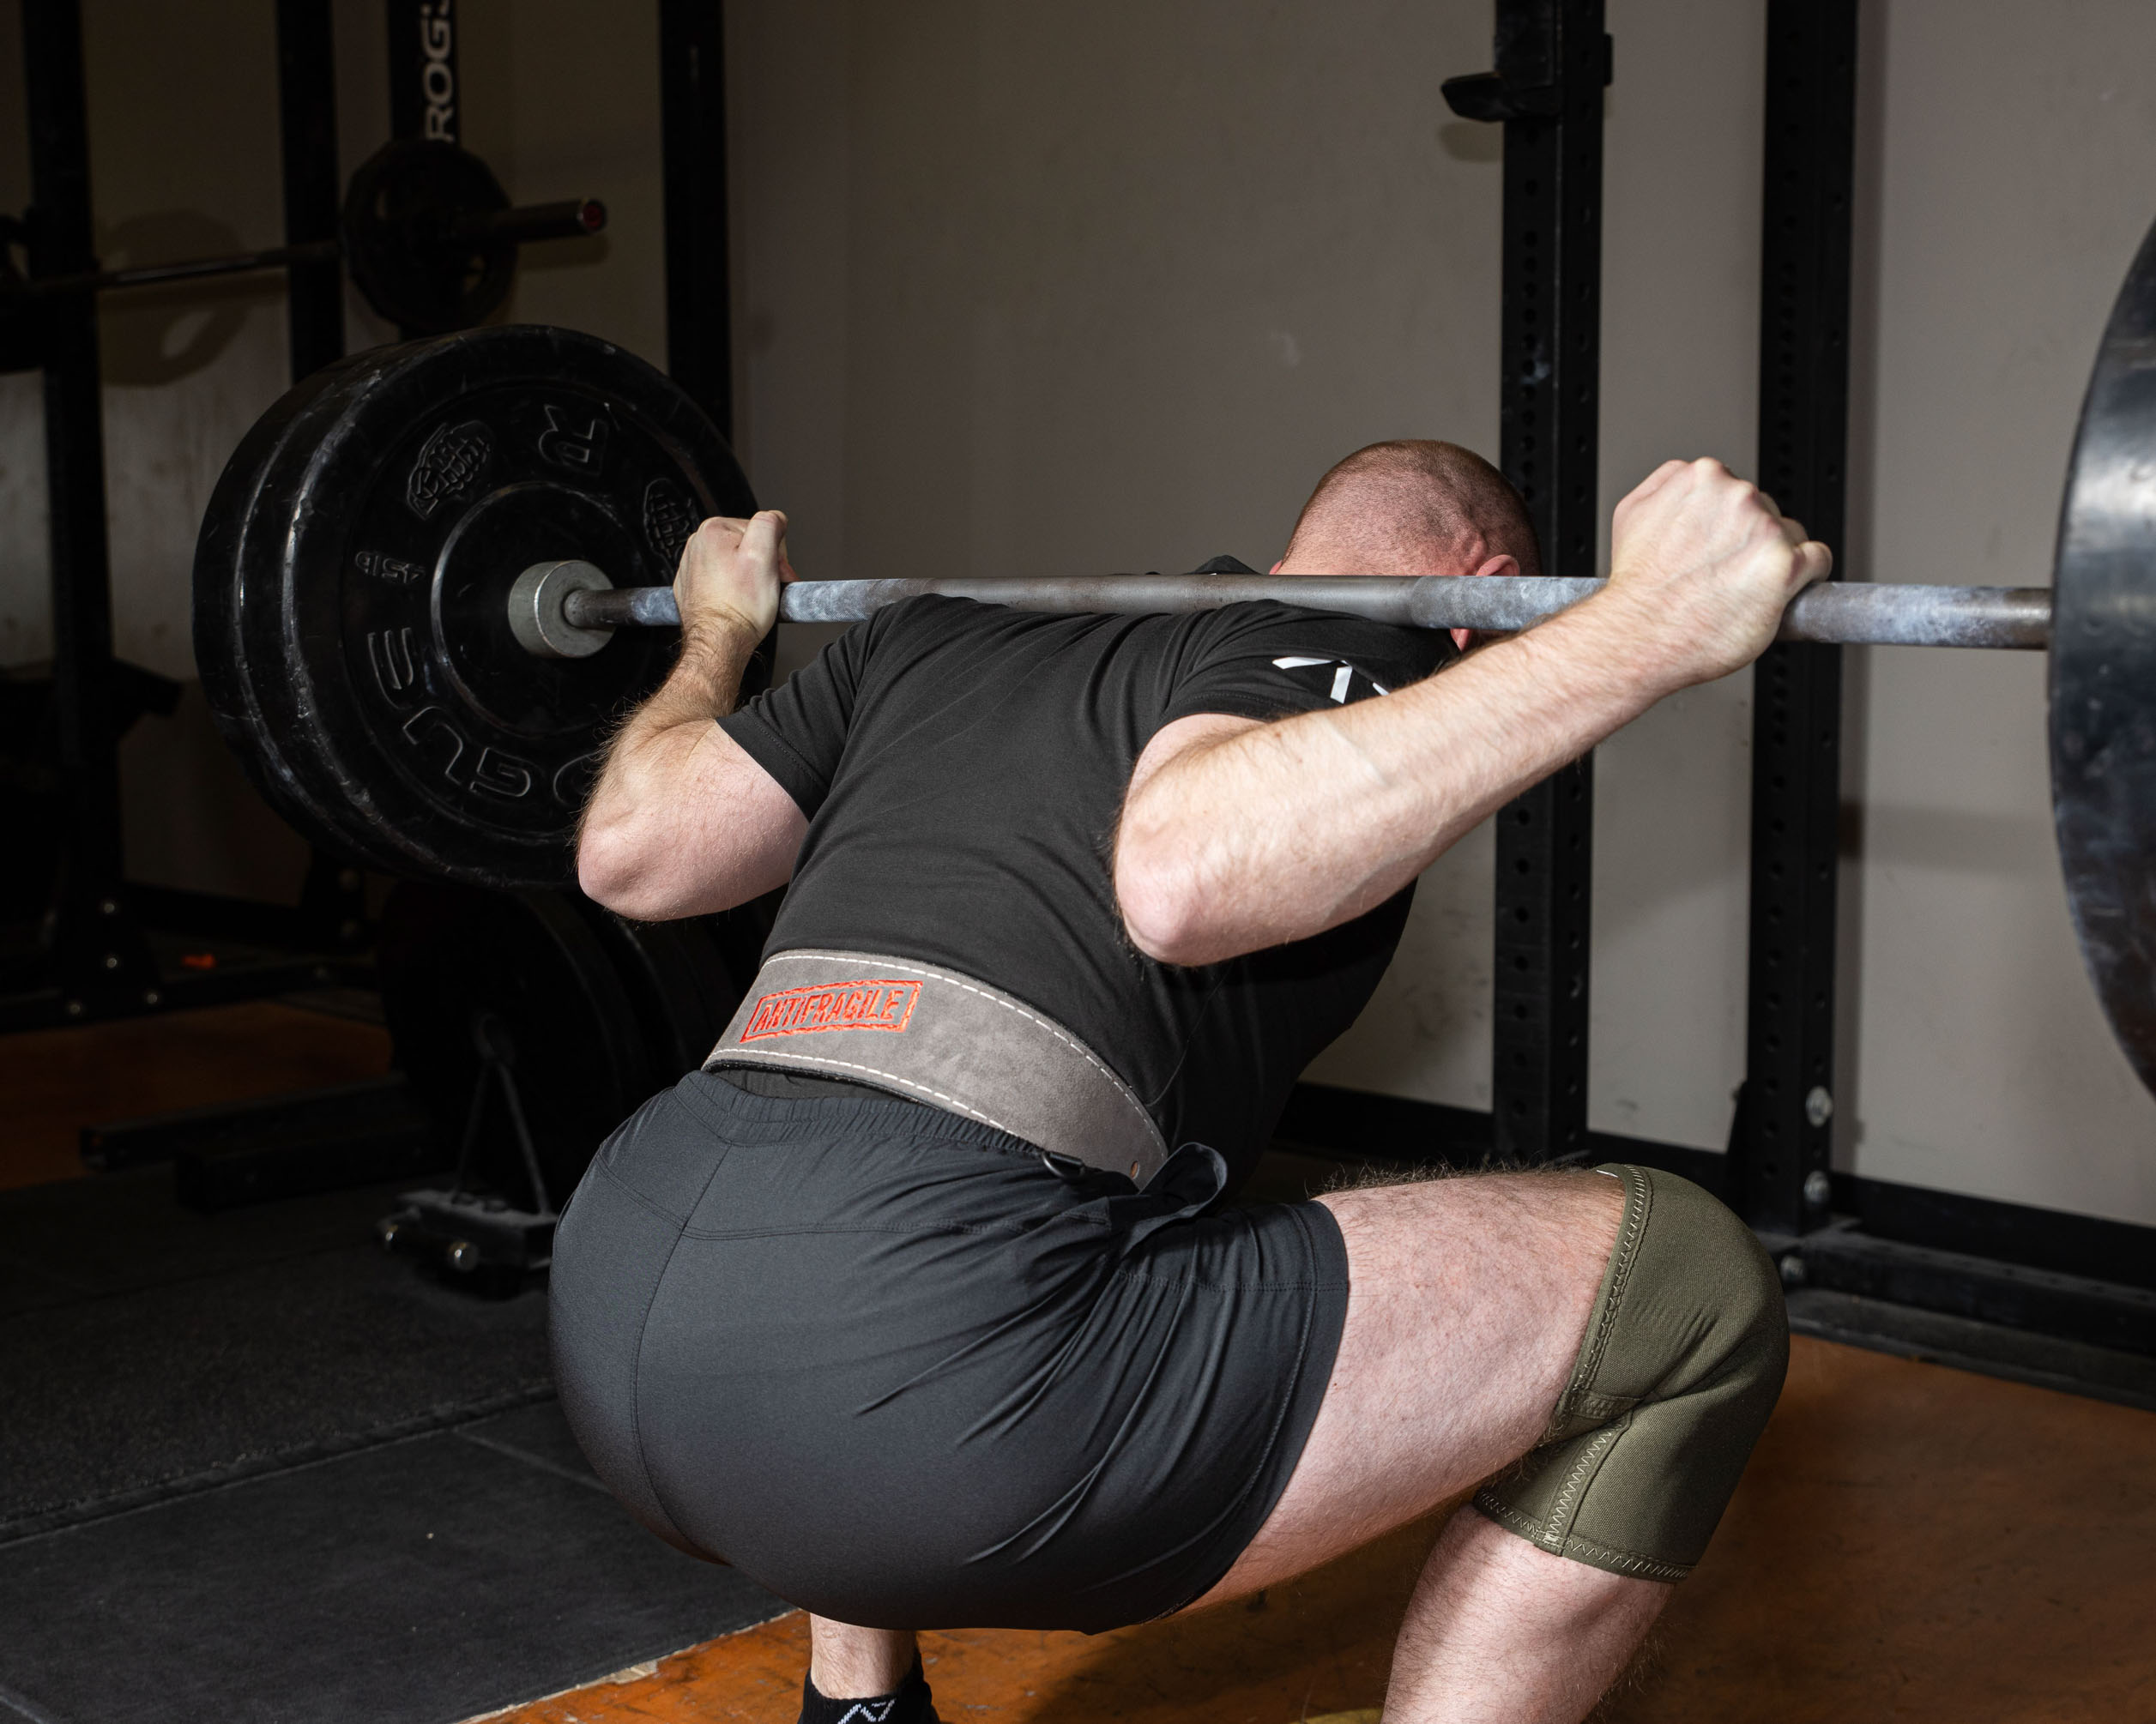 Knee sleeves for barbell squat